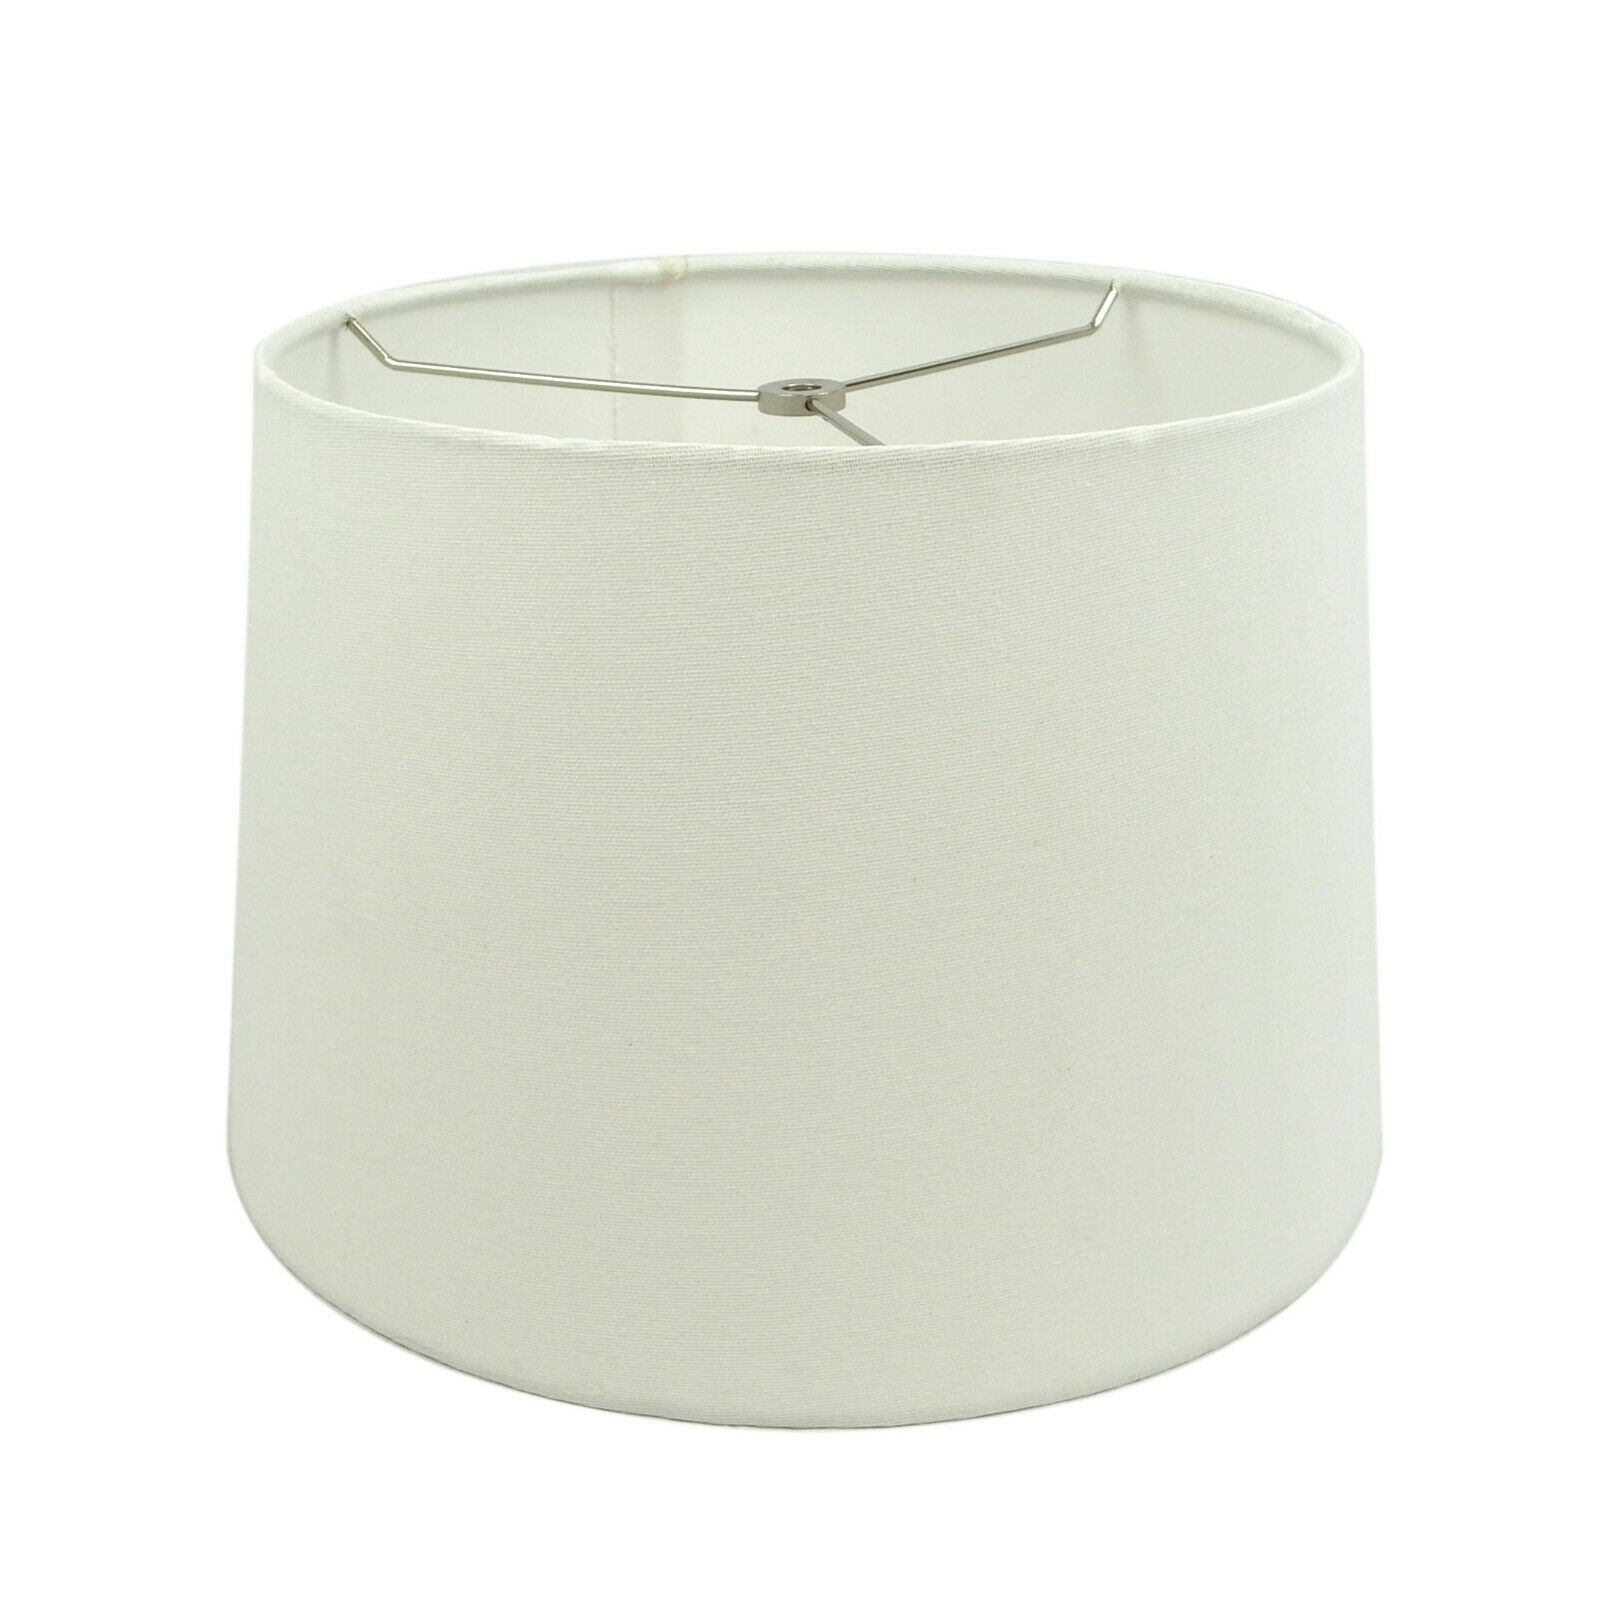 Hardback Drum Off White Fabric Lampshade for Table Lamp 12x1